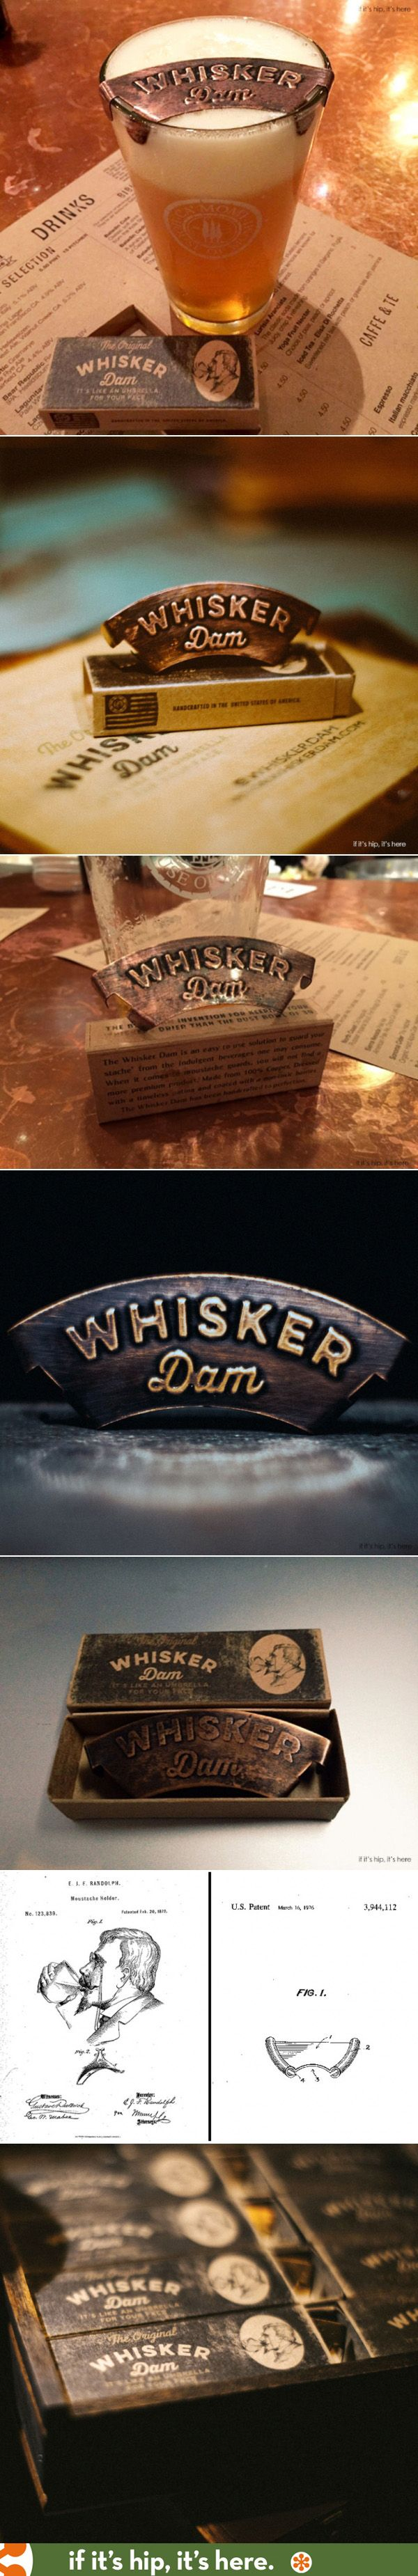 The Whisker Dam is a new product to protect a moustache from getting wet while drinking. The packaging design has a purposely distressed look and a vintage logo that was inspired by an original patent from 1872.  // This looks useful.